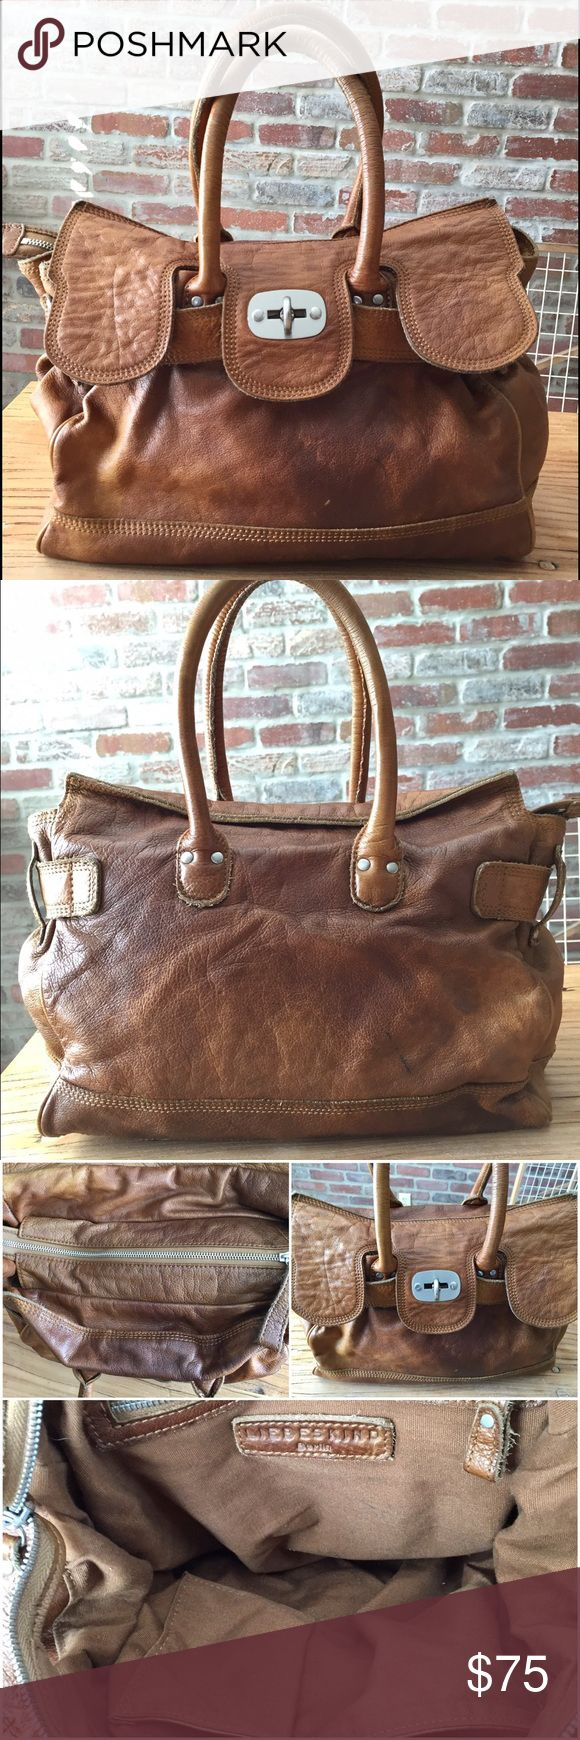 """Liebeskind Berlin Gloriana leather satchel Gorgeous distressed brown leather satchel. Flap, zip, and lock closure. 10""""H x 13""""W x 6"""" depth. 7"""" strap drop. 3 internal pockets. Some pen marks and one scratch in pictures. Originally sold at anthropologie for $300 Liebeskind Bags Satchels"""